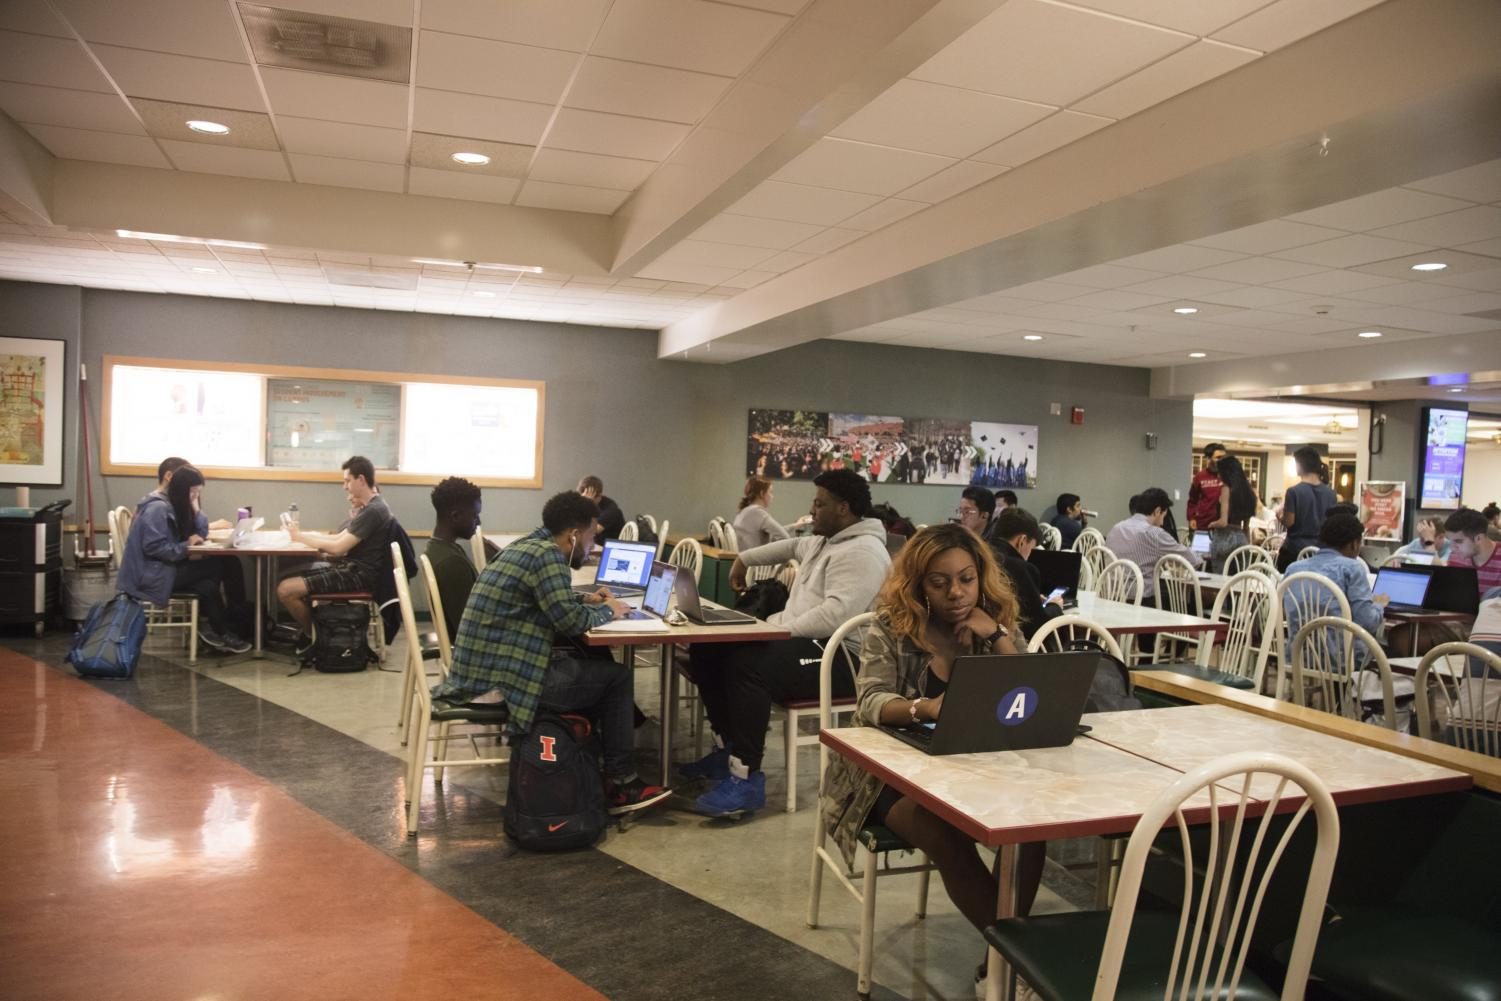 Students in the basement of the Illini Union on Tuesday. In light of recent concerns about security of internet-connected devices, the state of Illinois has passed new legislation banning manufacturers from collecting audio without consumers' consent. This new bill will calm the public's fear of invasion of privacy.